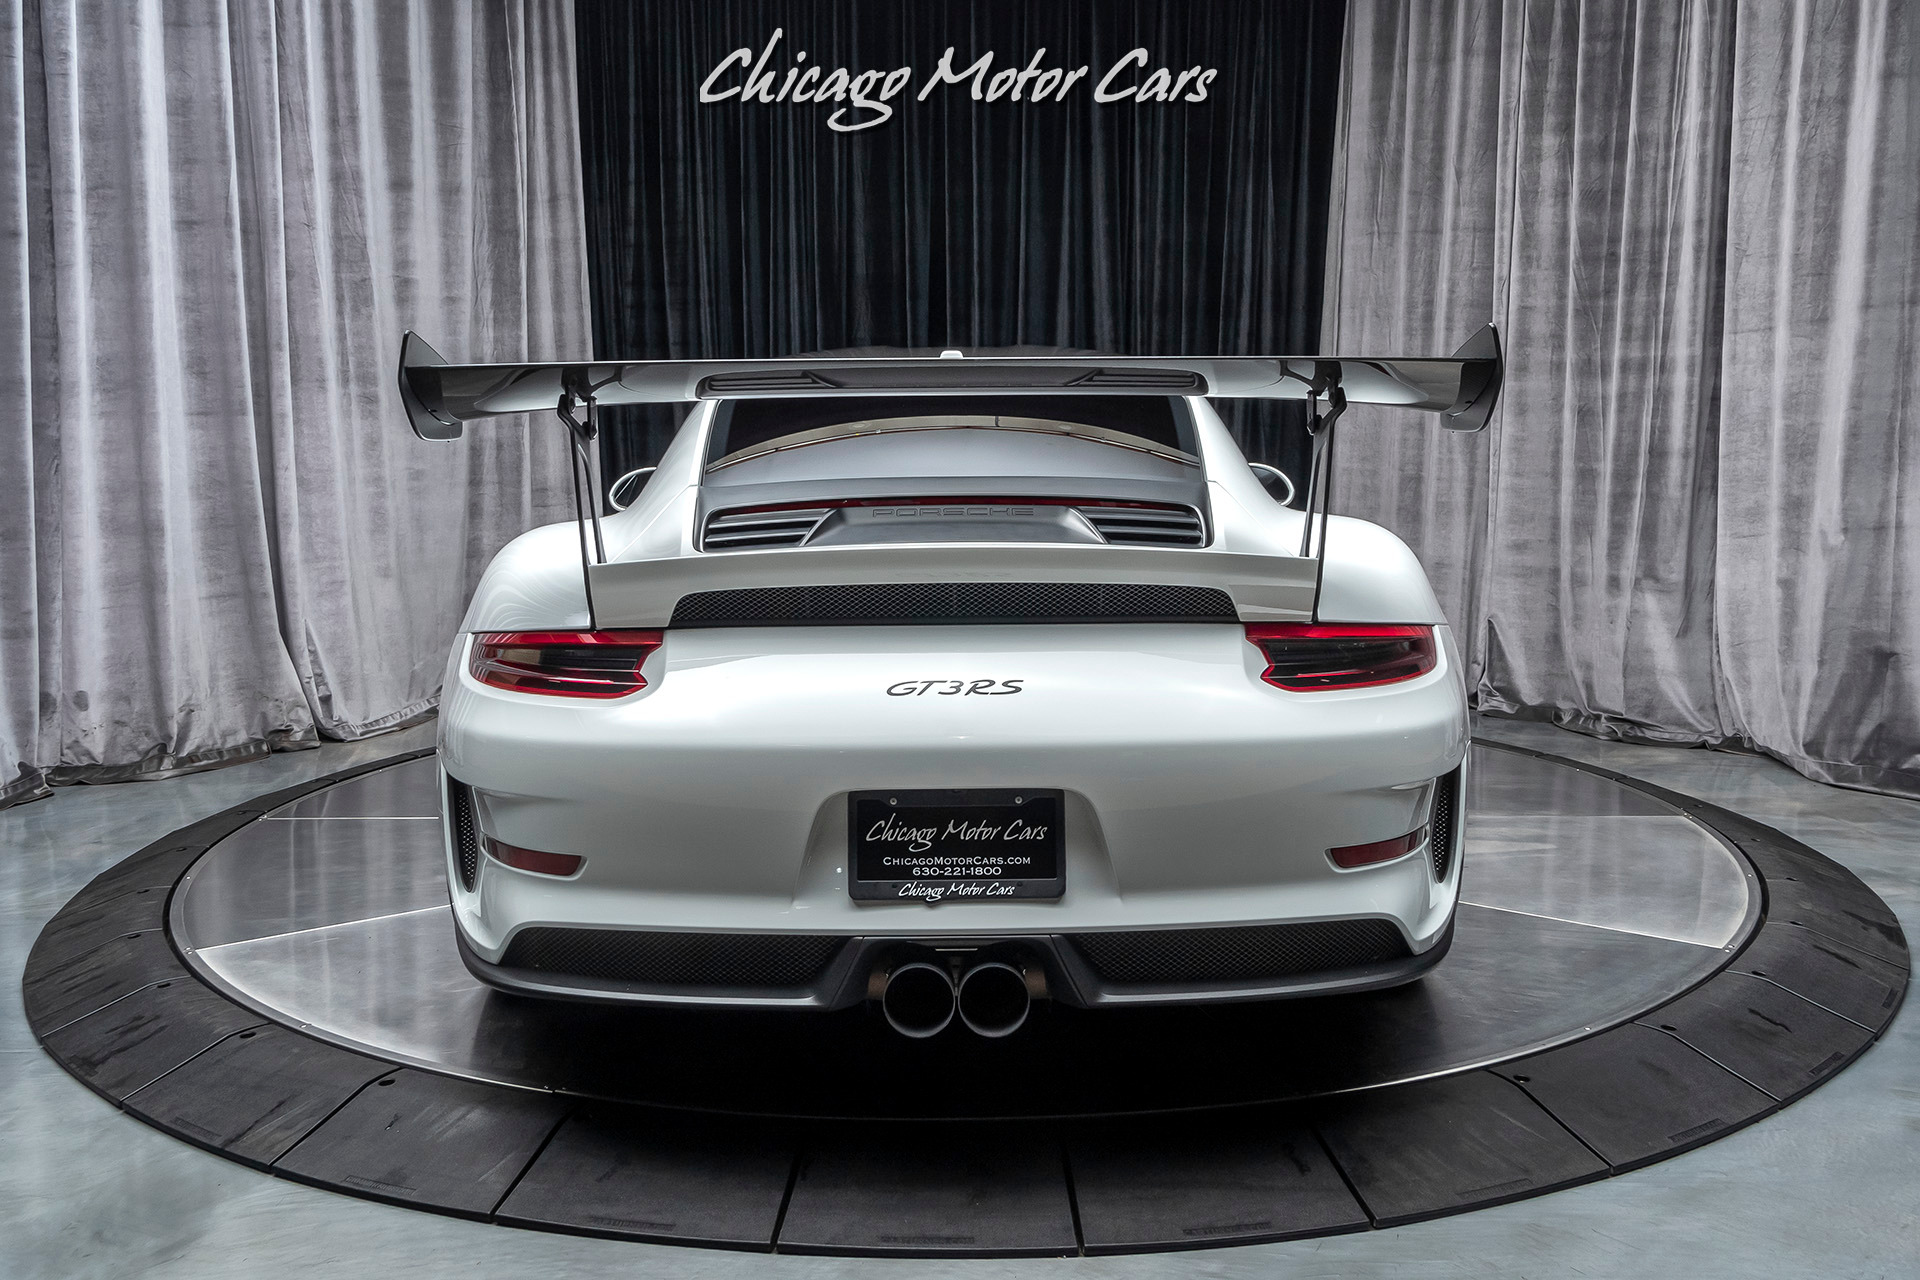 Used-2019-Porsche-911-GT3-RS-Weissach-Package-Loaded-Only-5k-Miles-Upgraded-Exhaust